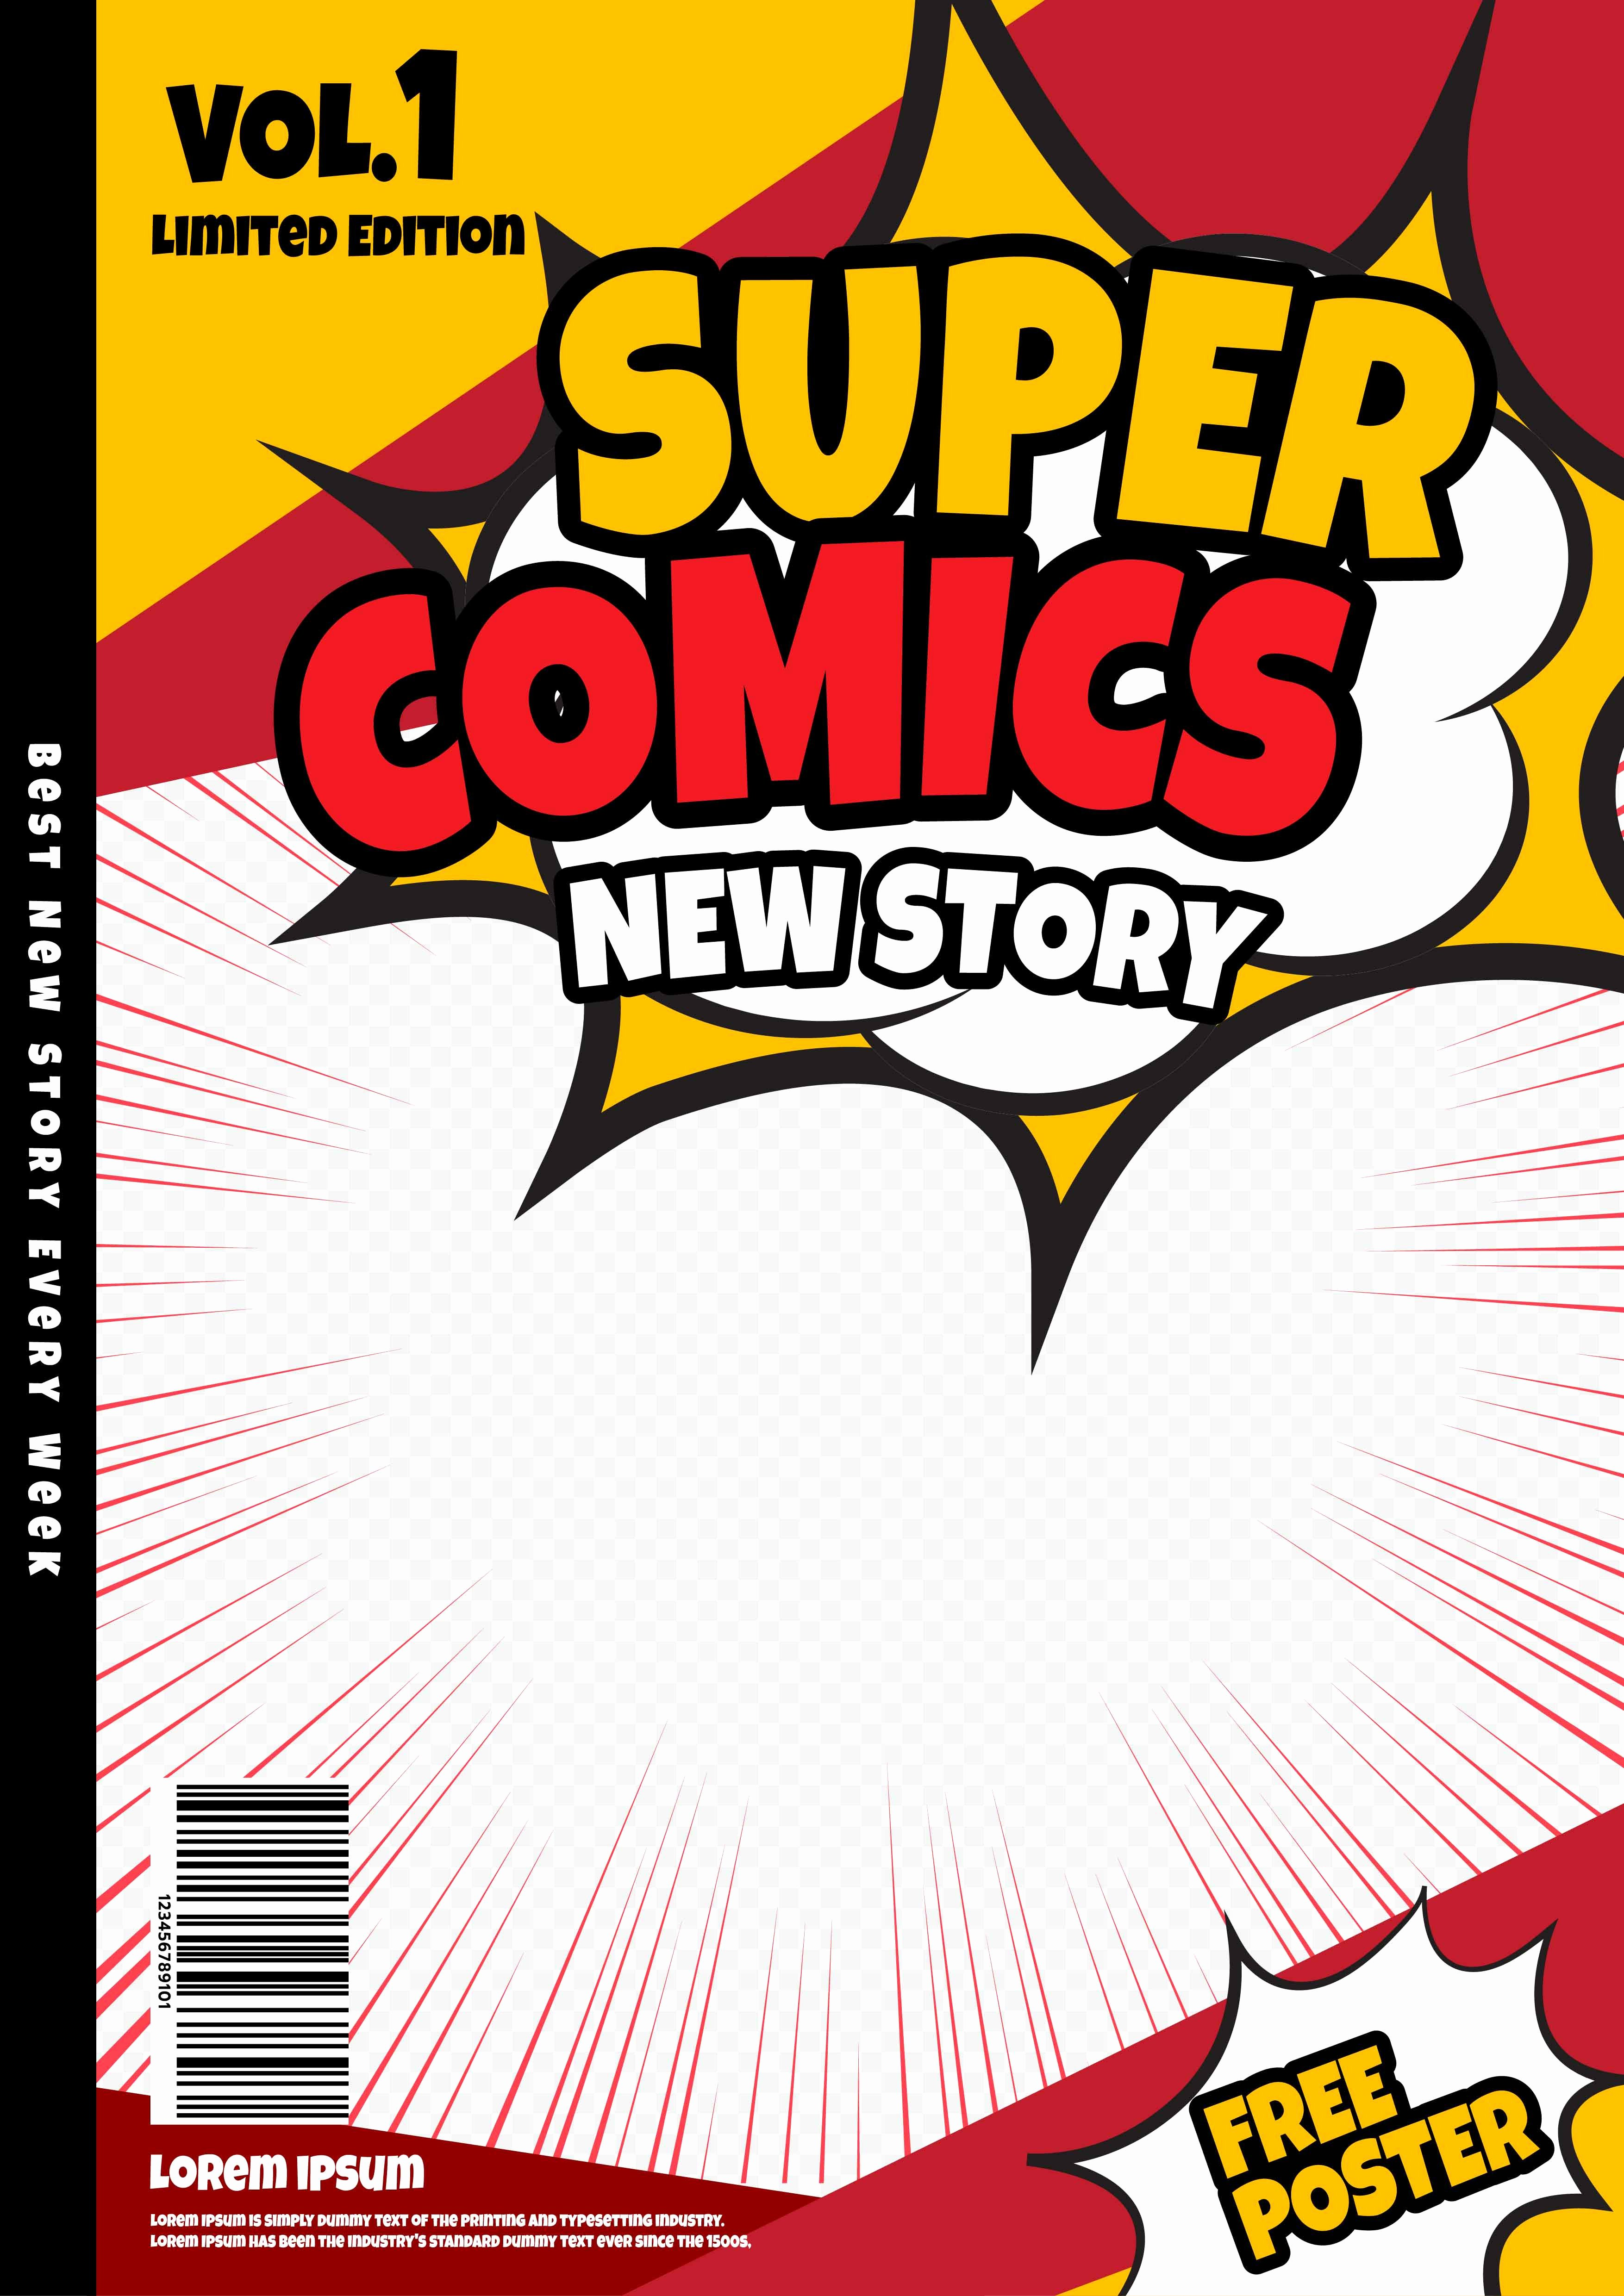 Comic Book Cover Template Inspirational Ic Book Page Template Design Magazine Cover Vector Download Free Vector Art Stock